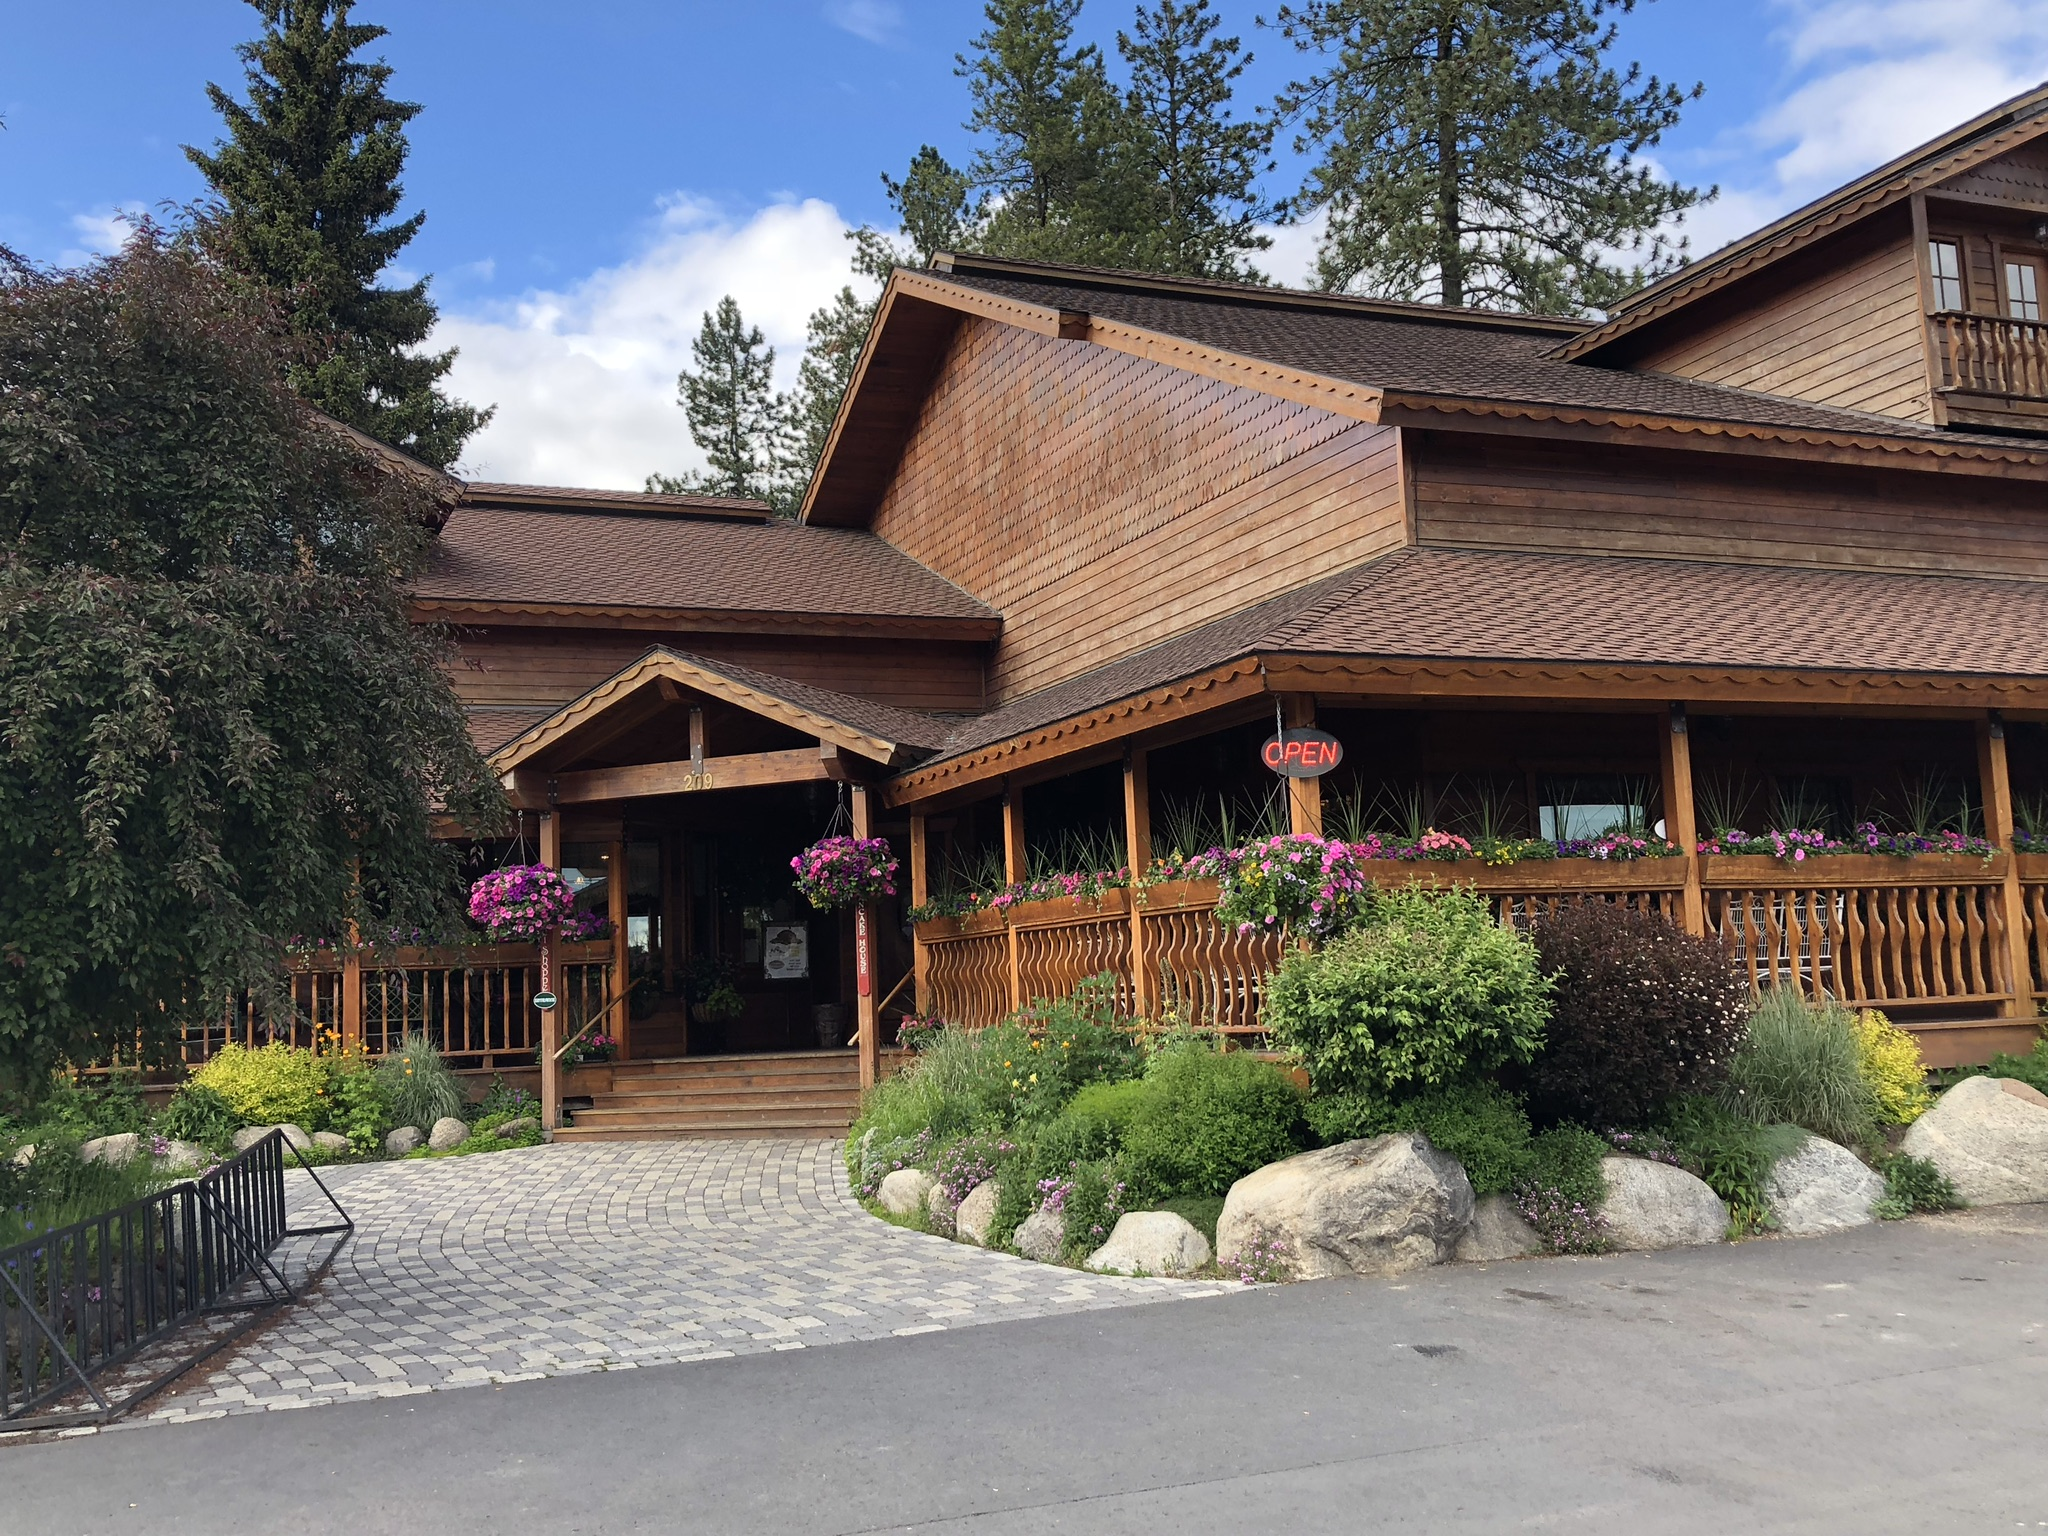 Iconic McCall breakfast restaurant listed for sale - BoiseDev